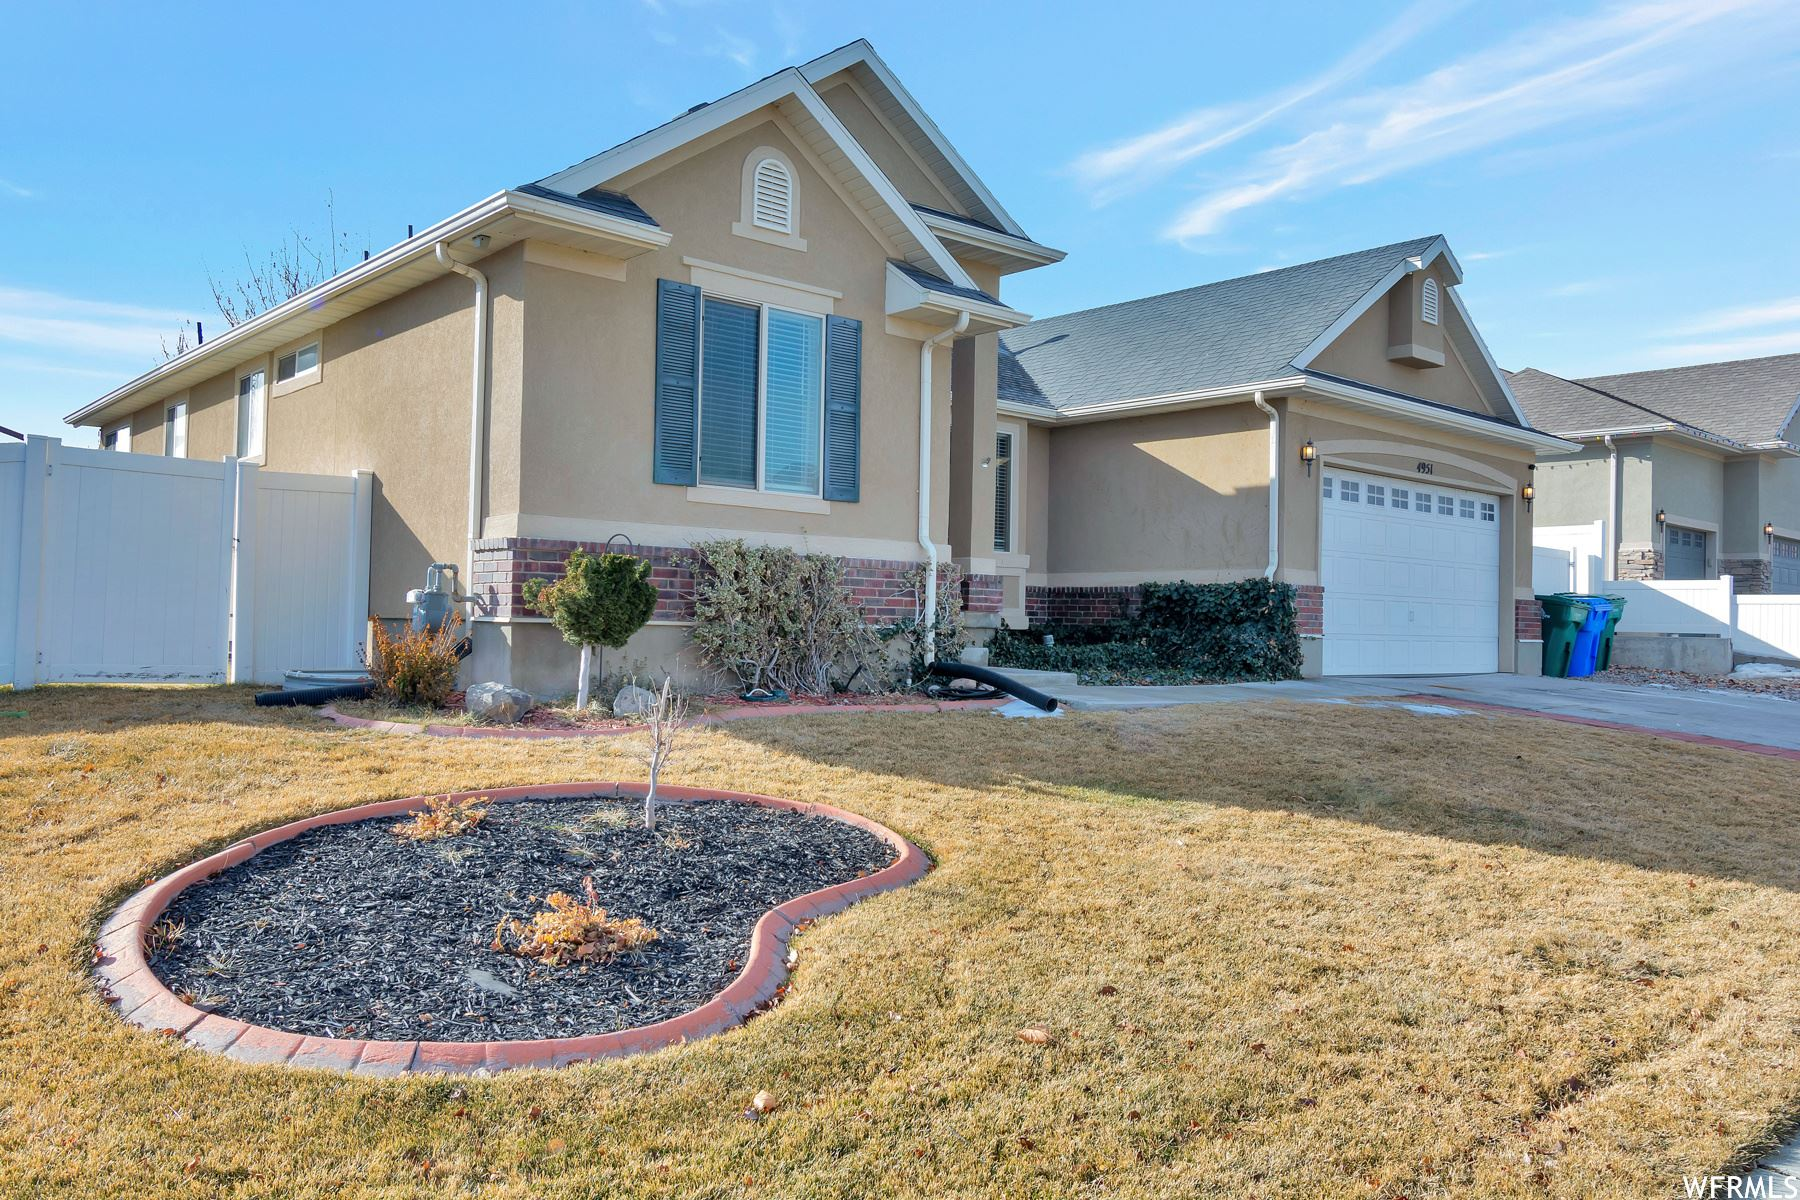 Photo of 4951 W RED ADMIRAL S DR, Riverton, UT 84096 (MLS # 1730997)